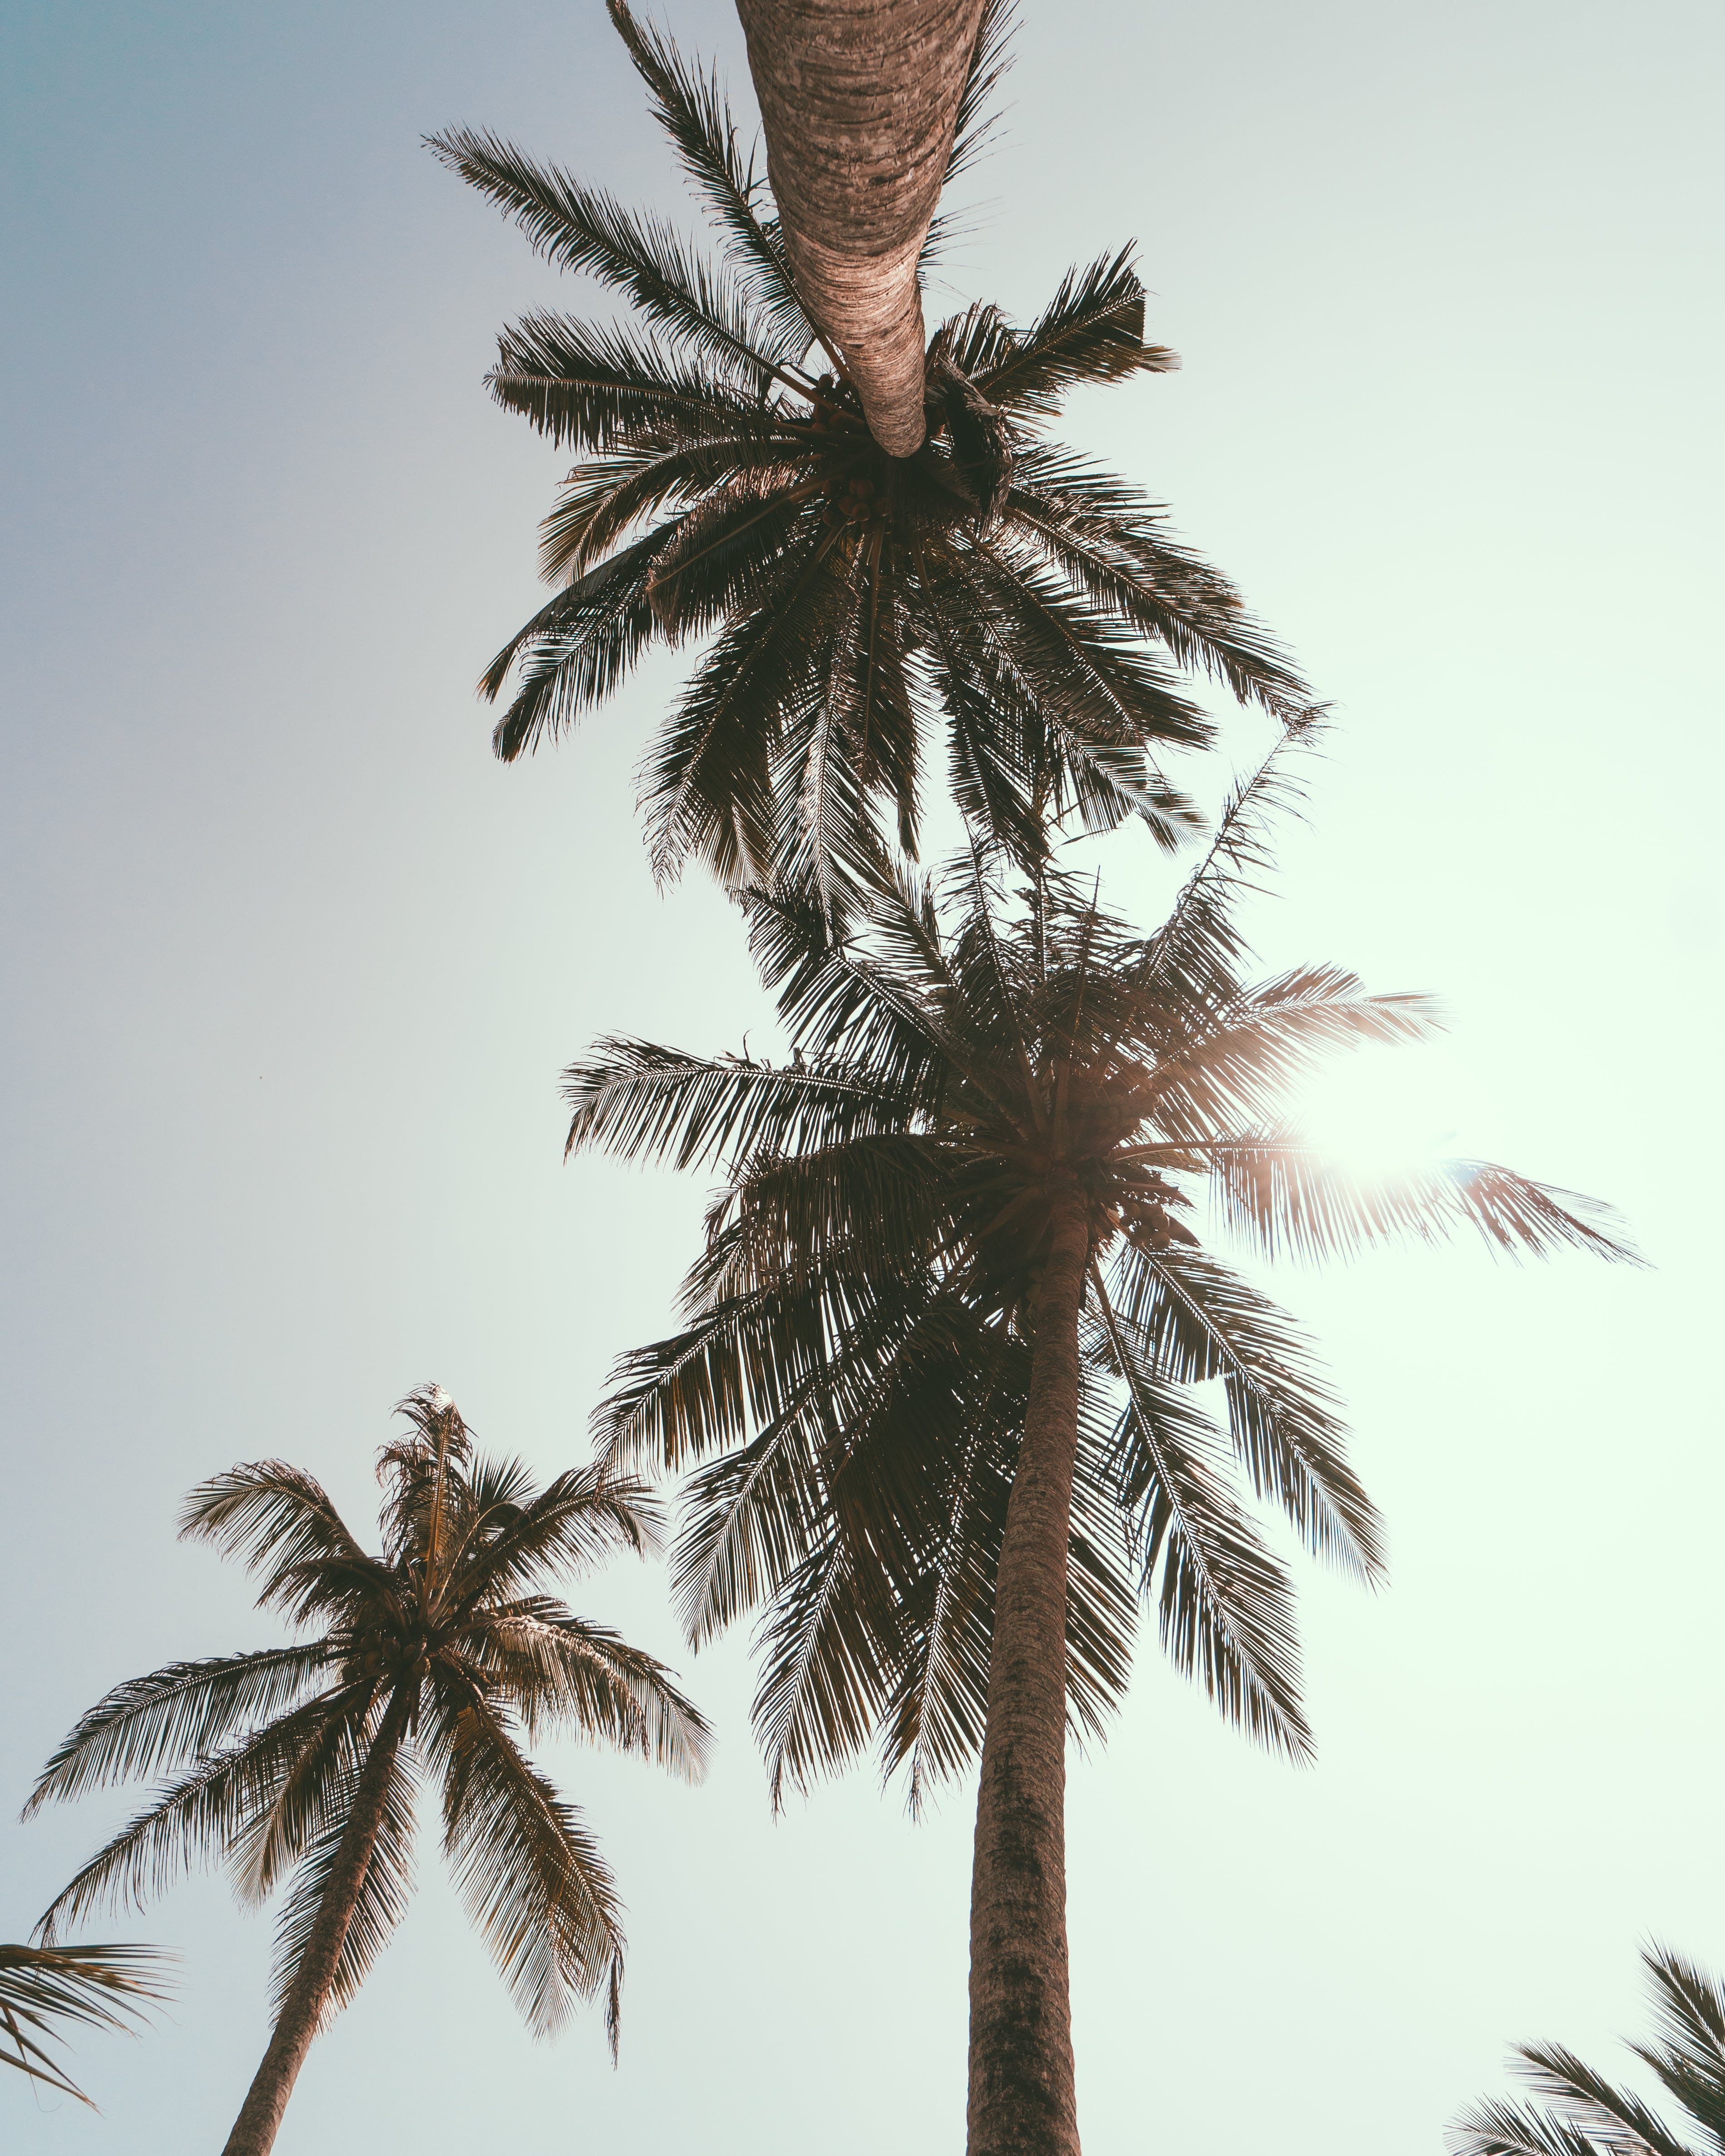 Low Angle Photography of Coconut Trees Under Blue Sky